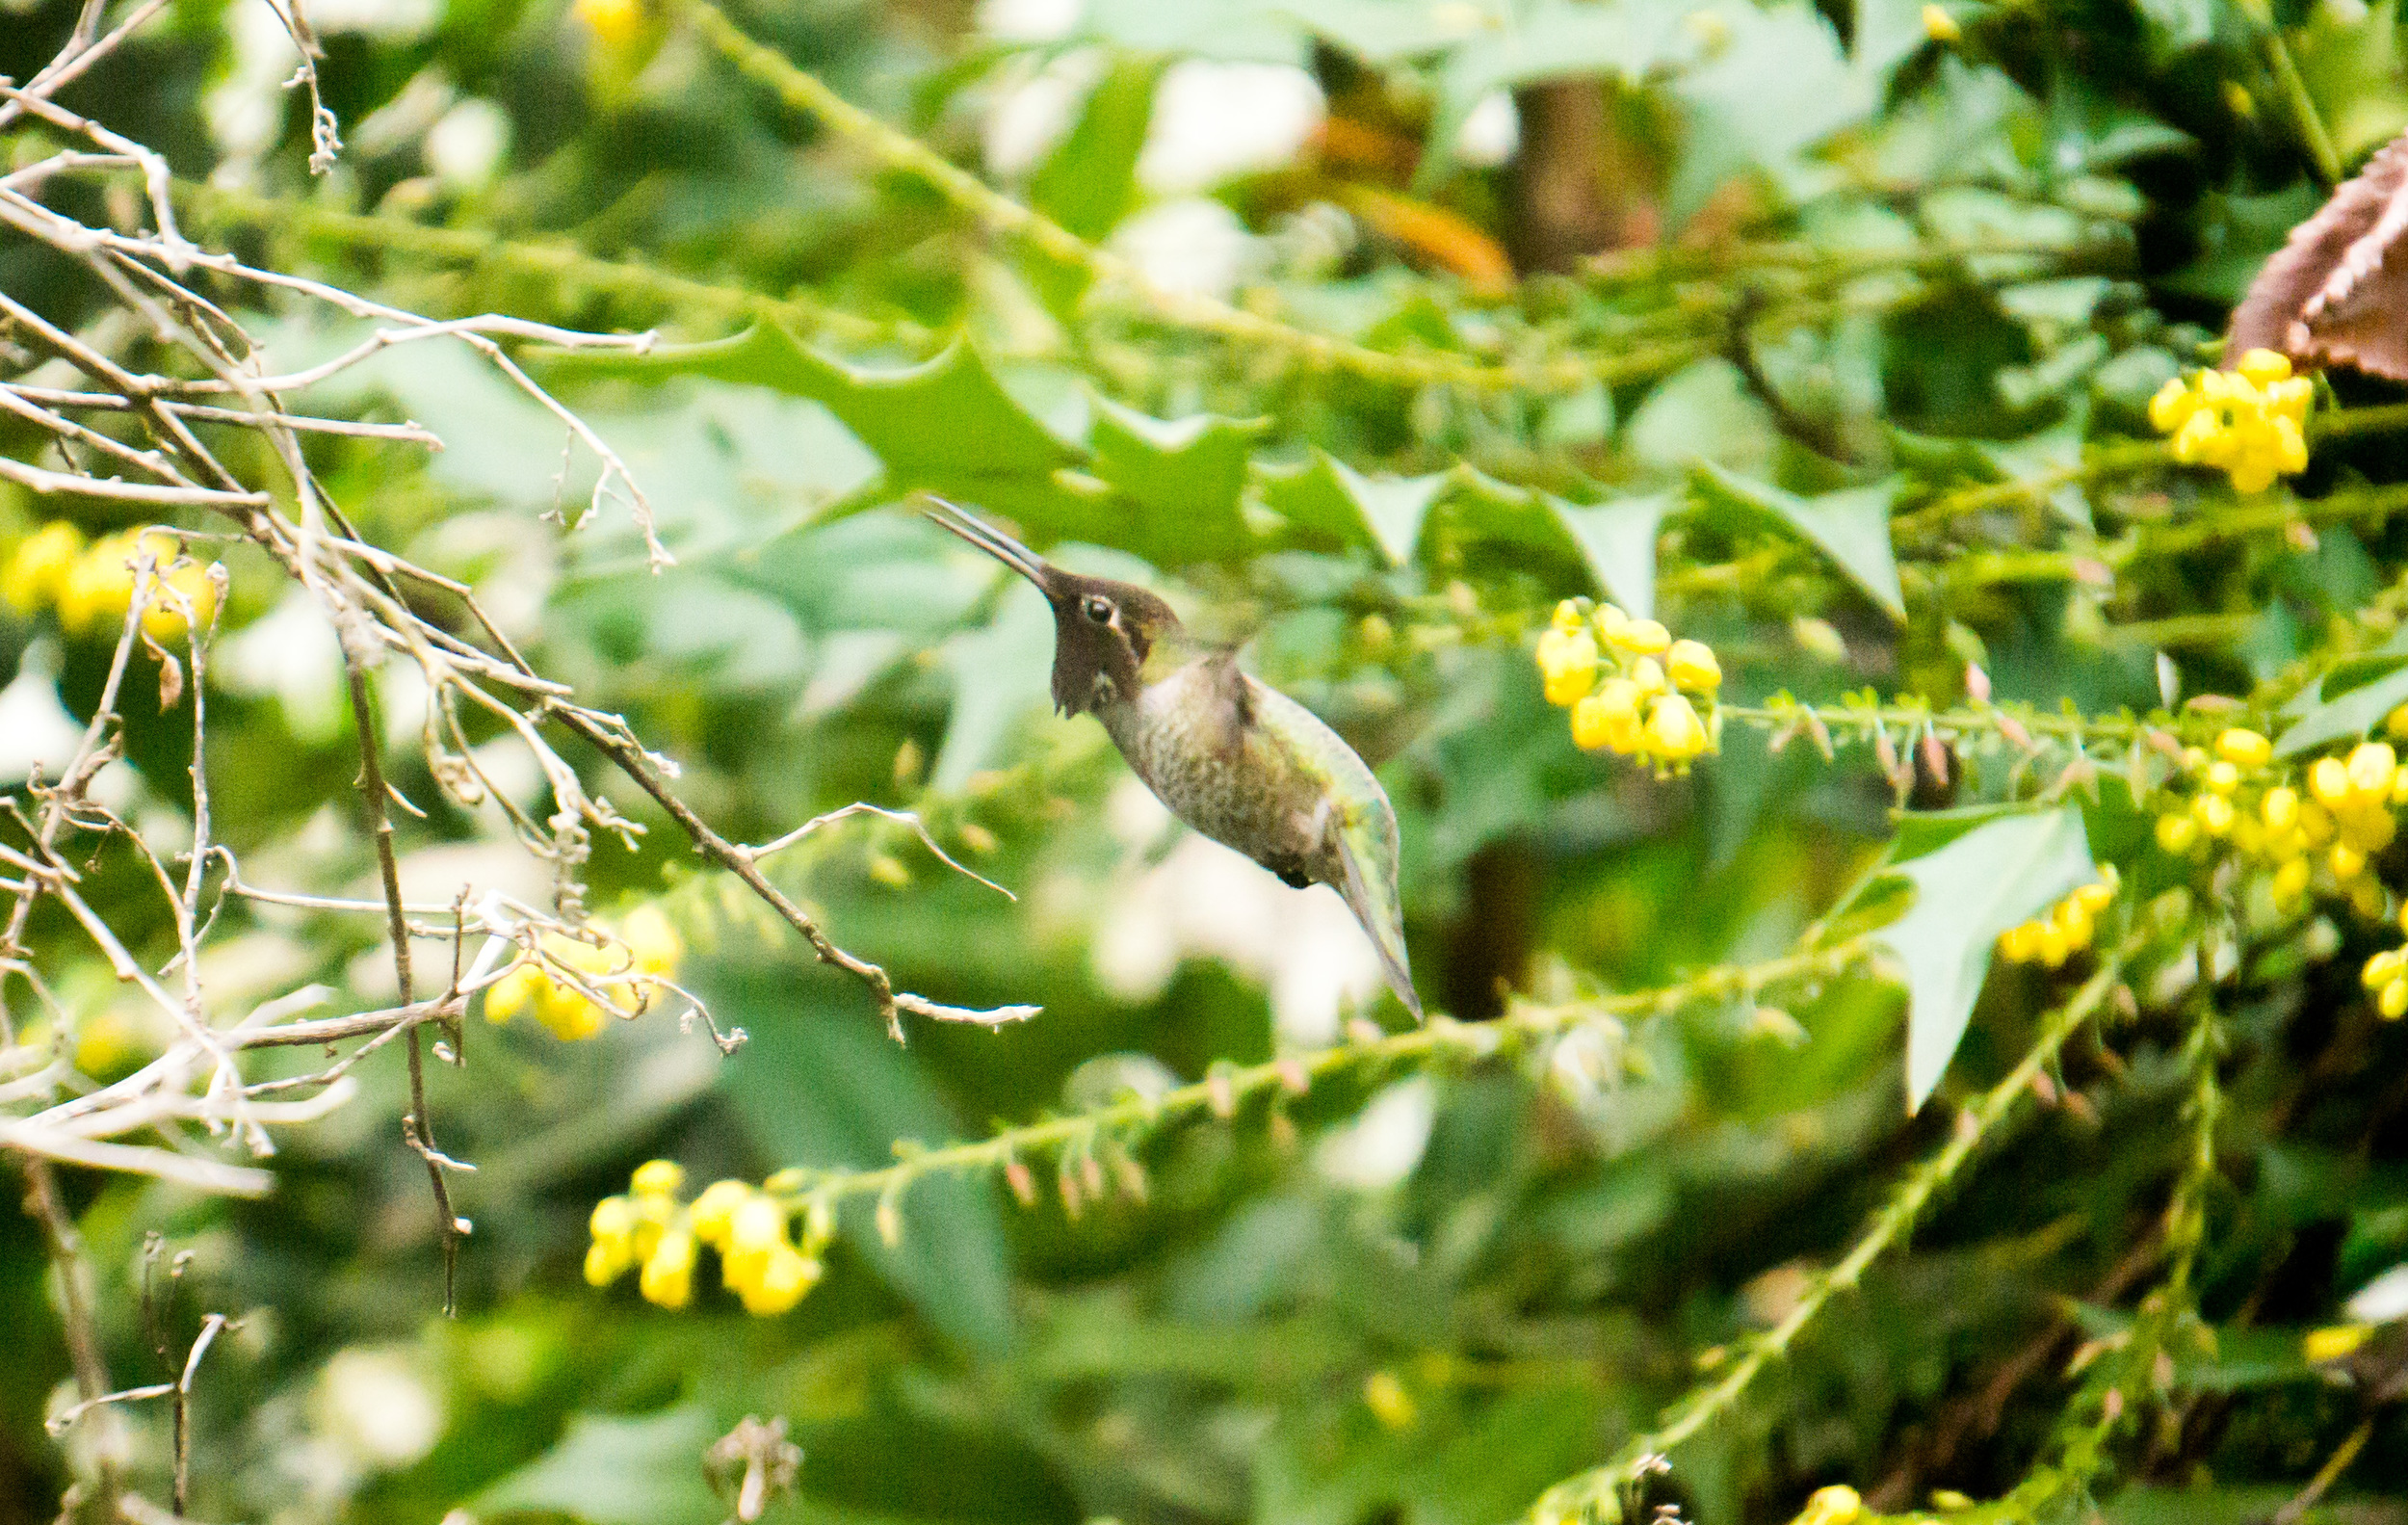 A hummingbird in our backyard; a fitting image for how fast 2015 went and how hard I remember working.